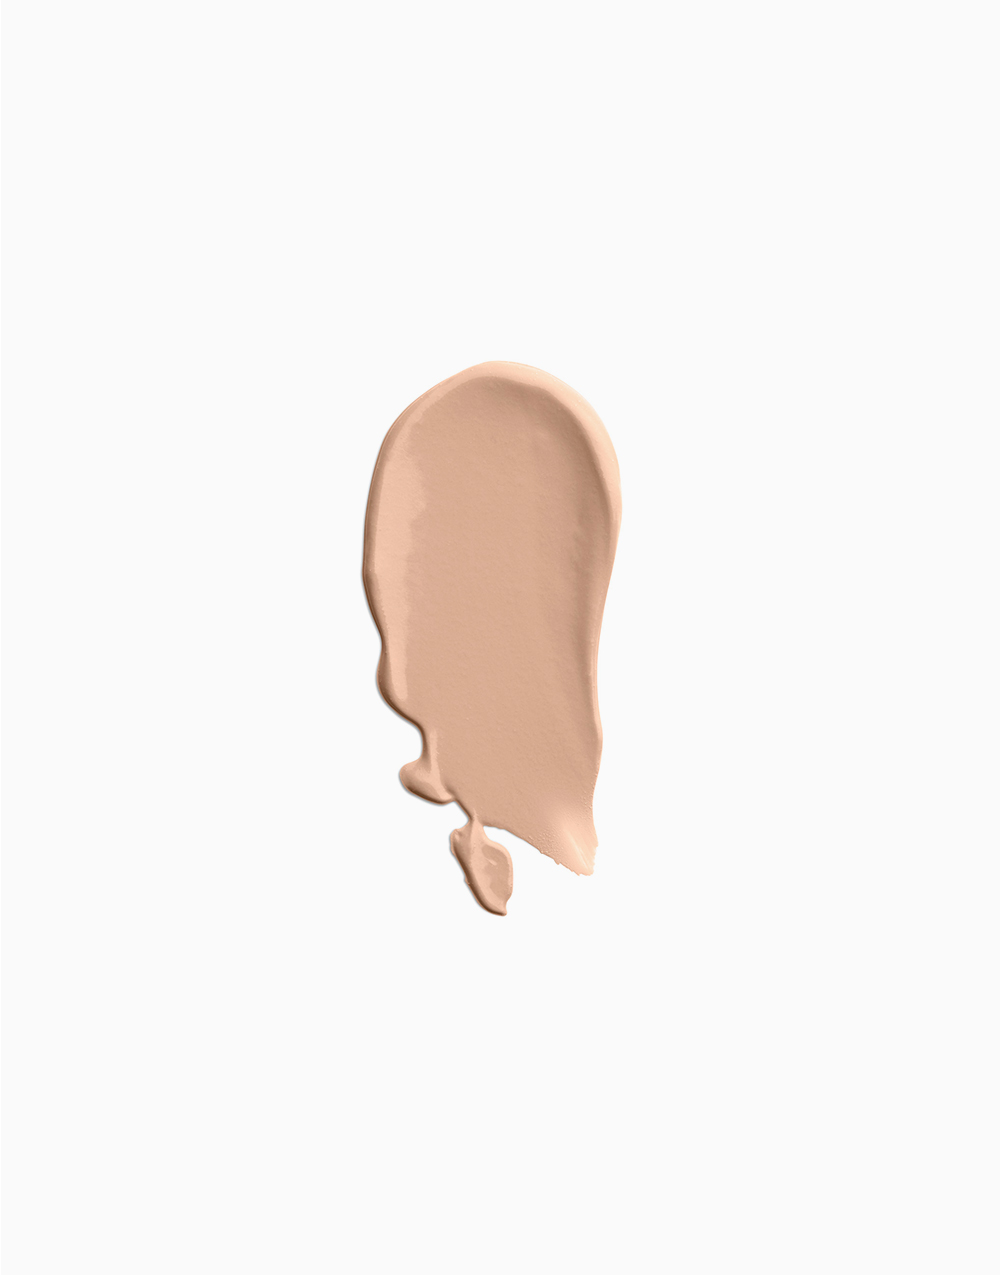 TruBlend Matte Made Liquid Foundation by CoverGirl   Classic Ivory